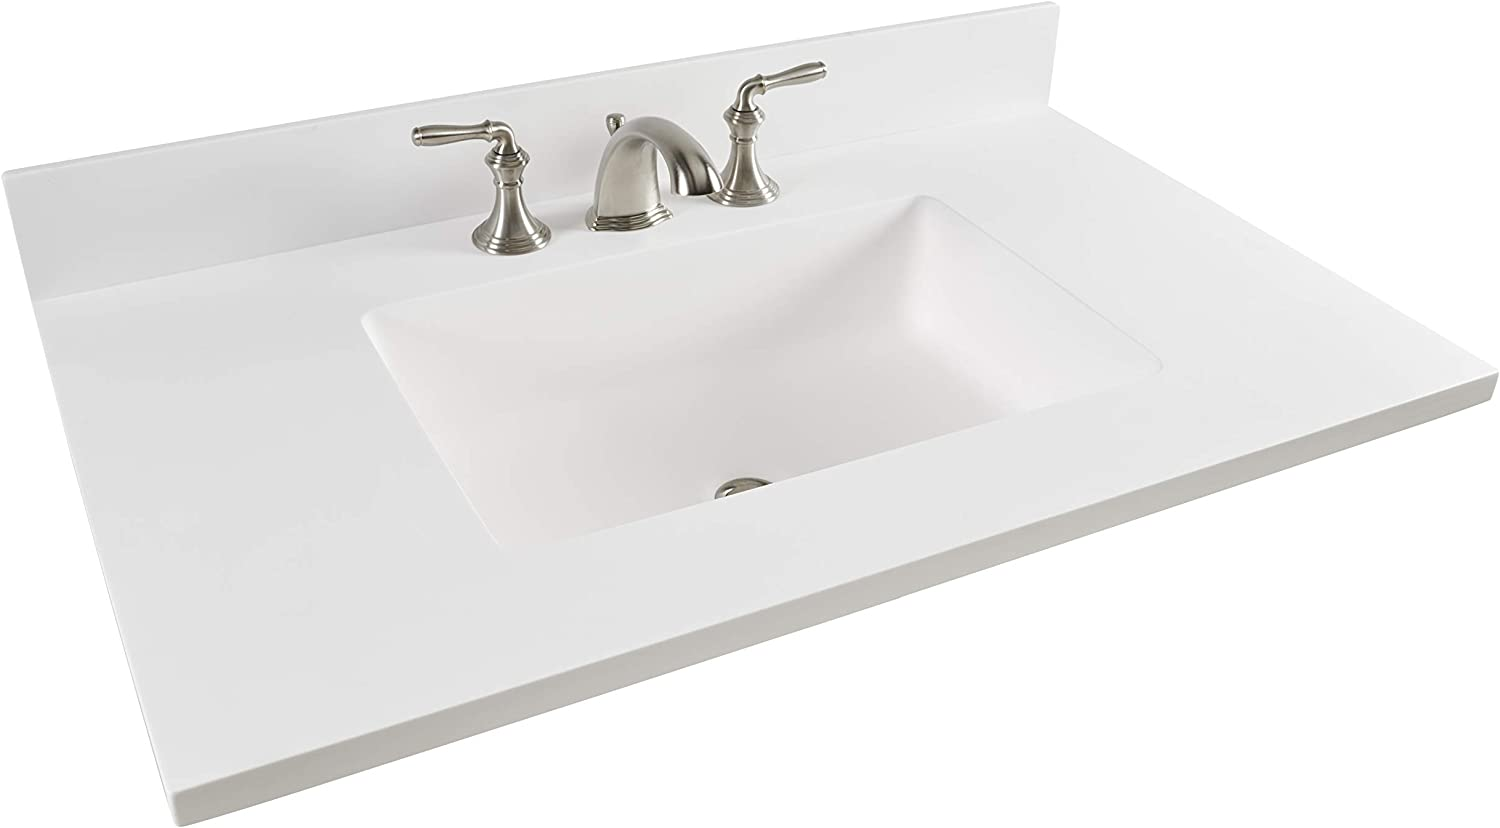 Vanity Top Designed With Corian Solid Surface And 7722 Integrated Corian Elements Rectangular Sink 22 X 37 Glacier White Amazon Com